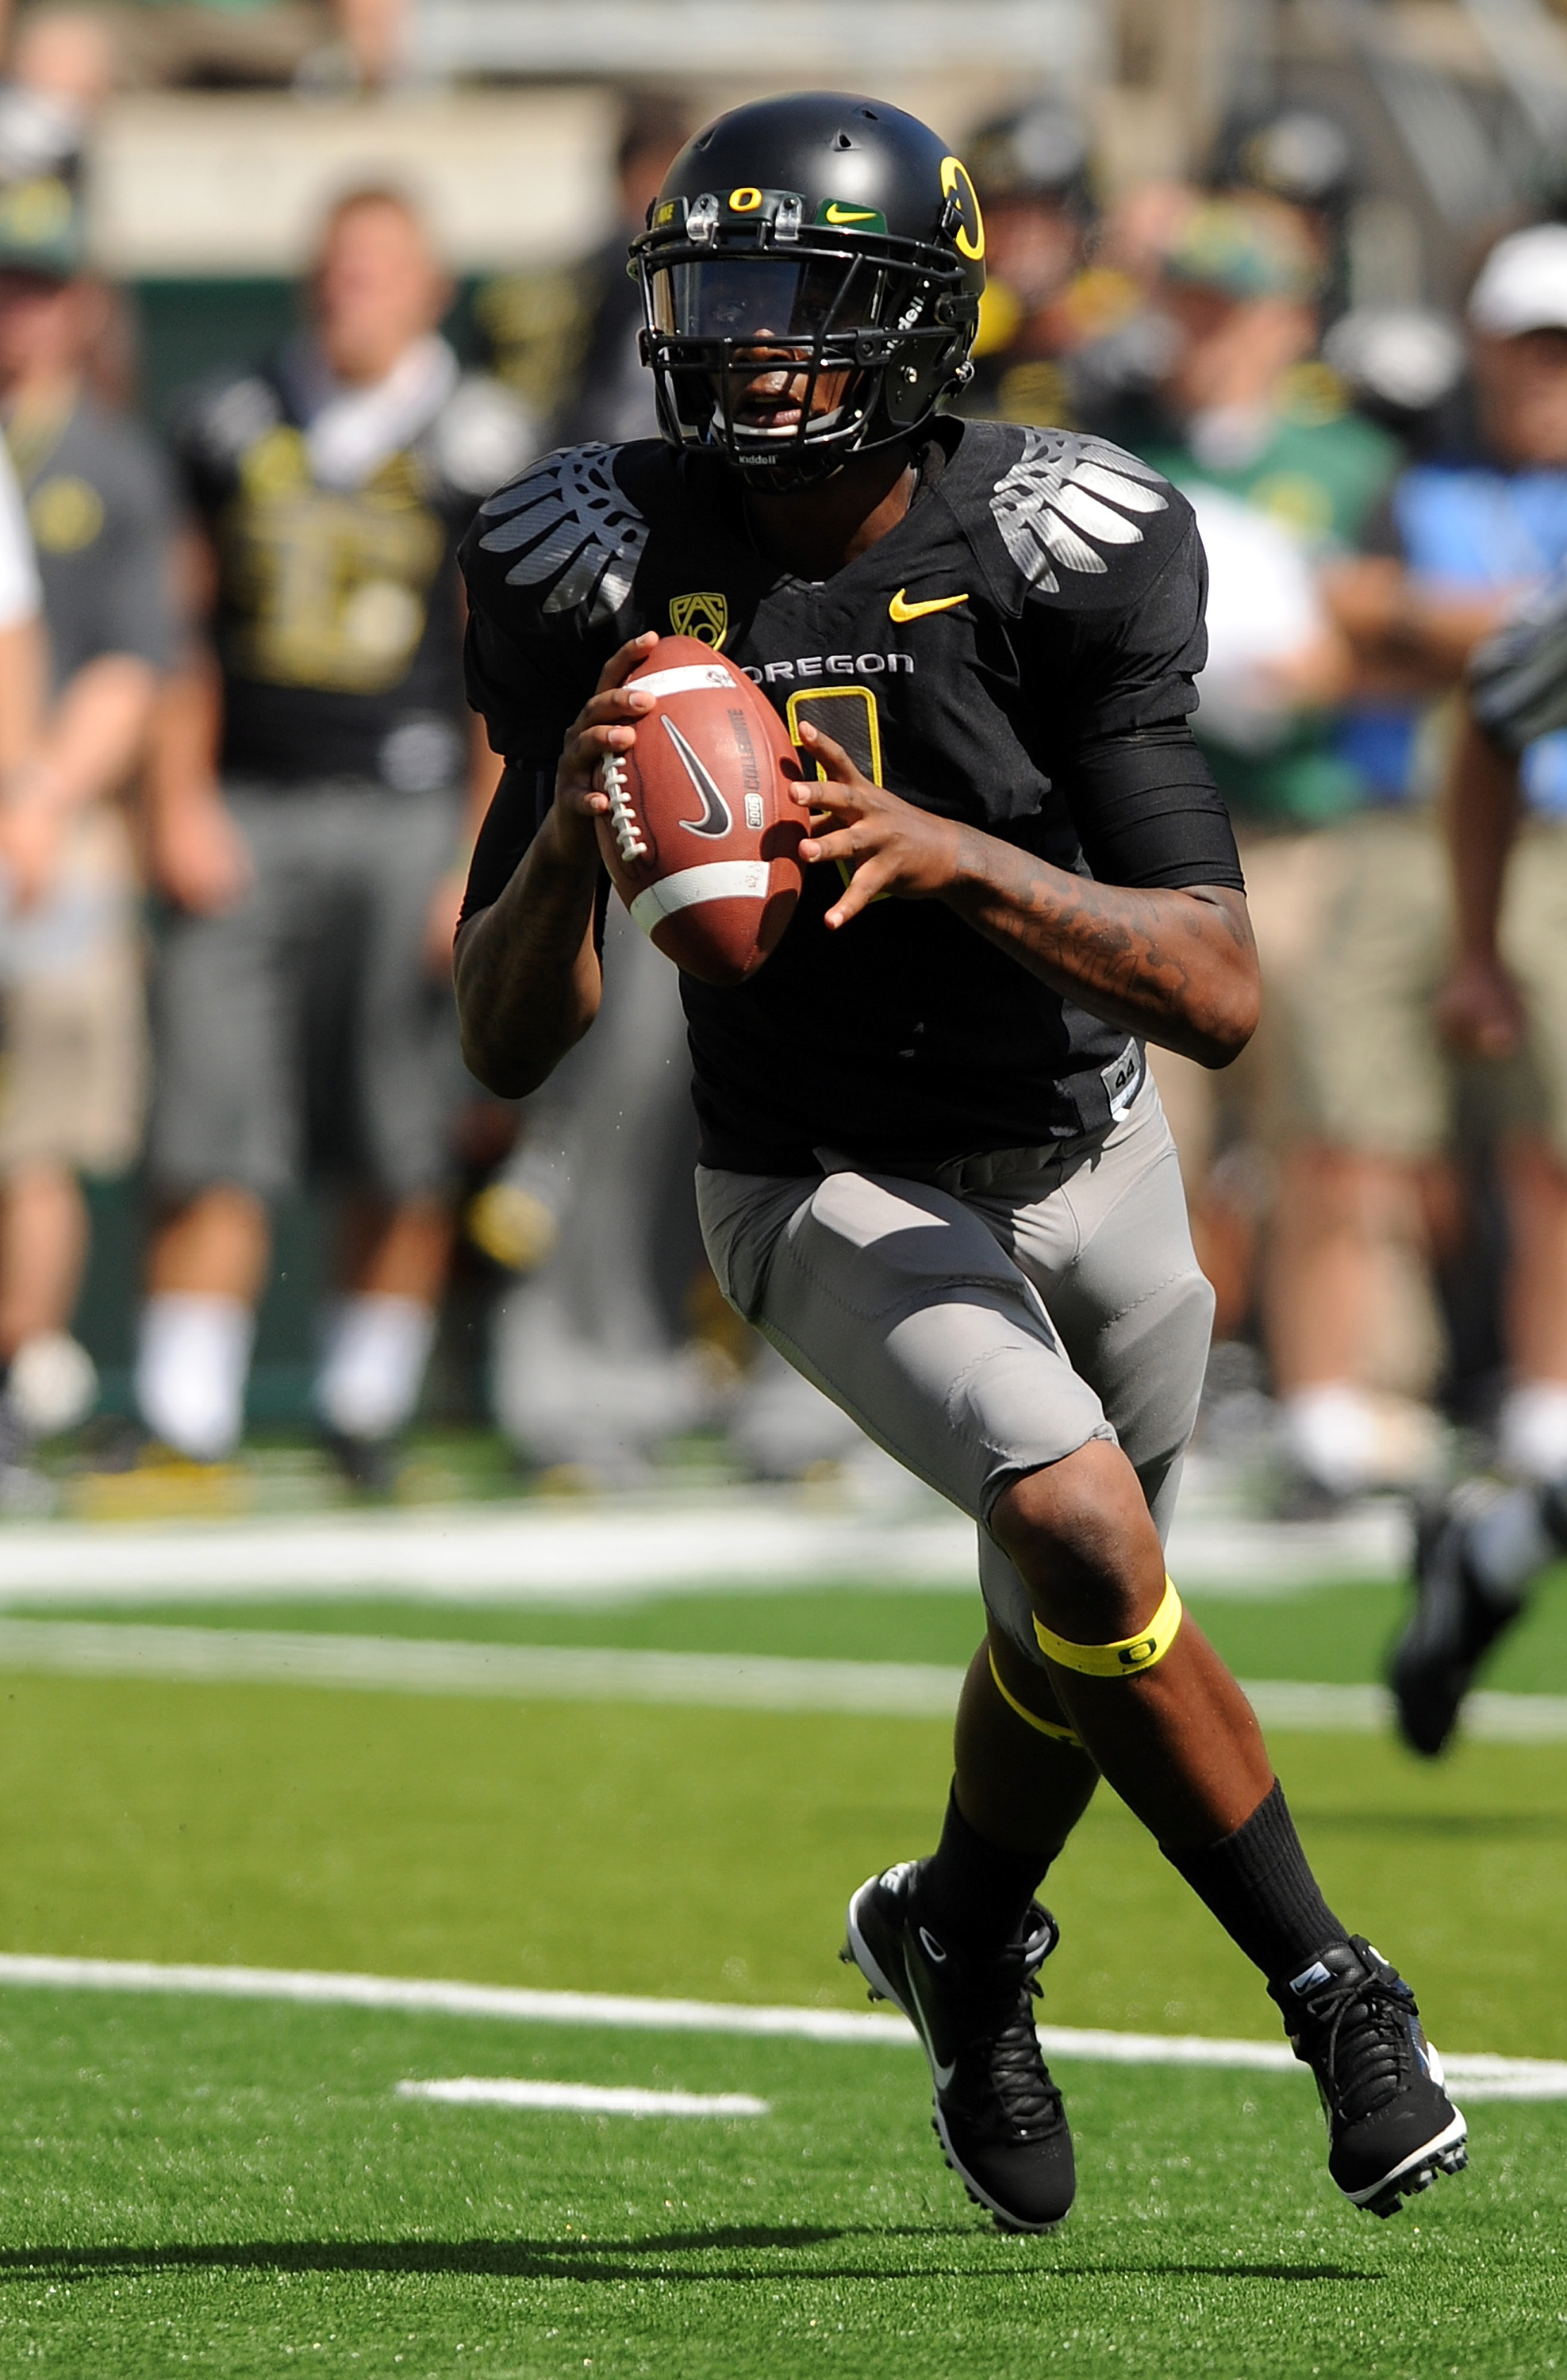 EUGENE, OR - SEPTEMBER 04: Quarterback Darron Thomas #1 of the Oregon Ducks rolls out to pass in the first quarter of the game against the New Mexico Lobos at Autzen Stadium on September 4, 2010 in Eugene, Oregon.  (Photo by Steve Dykes/Getty Images)